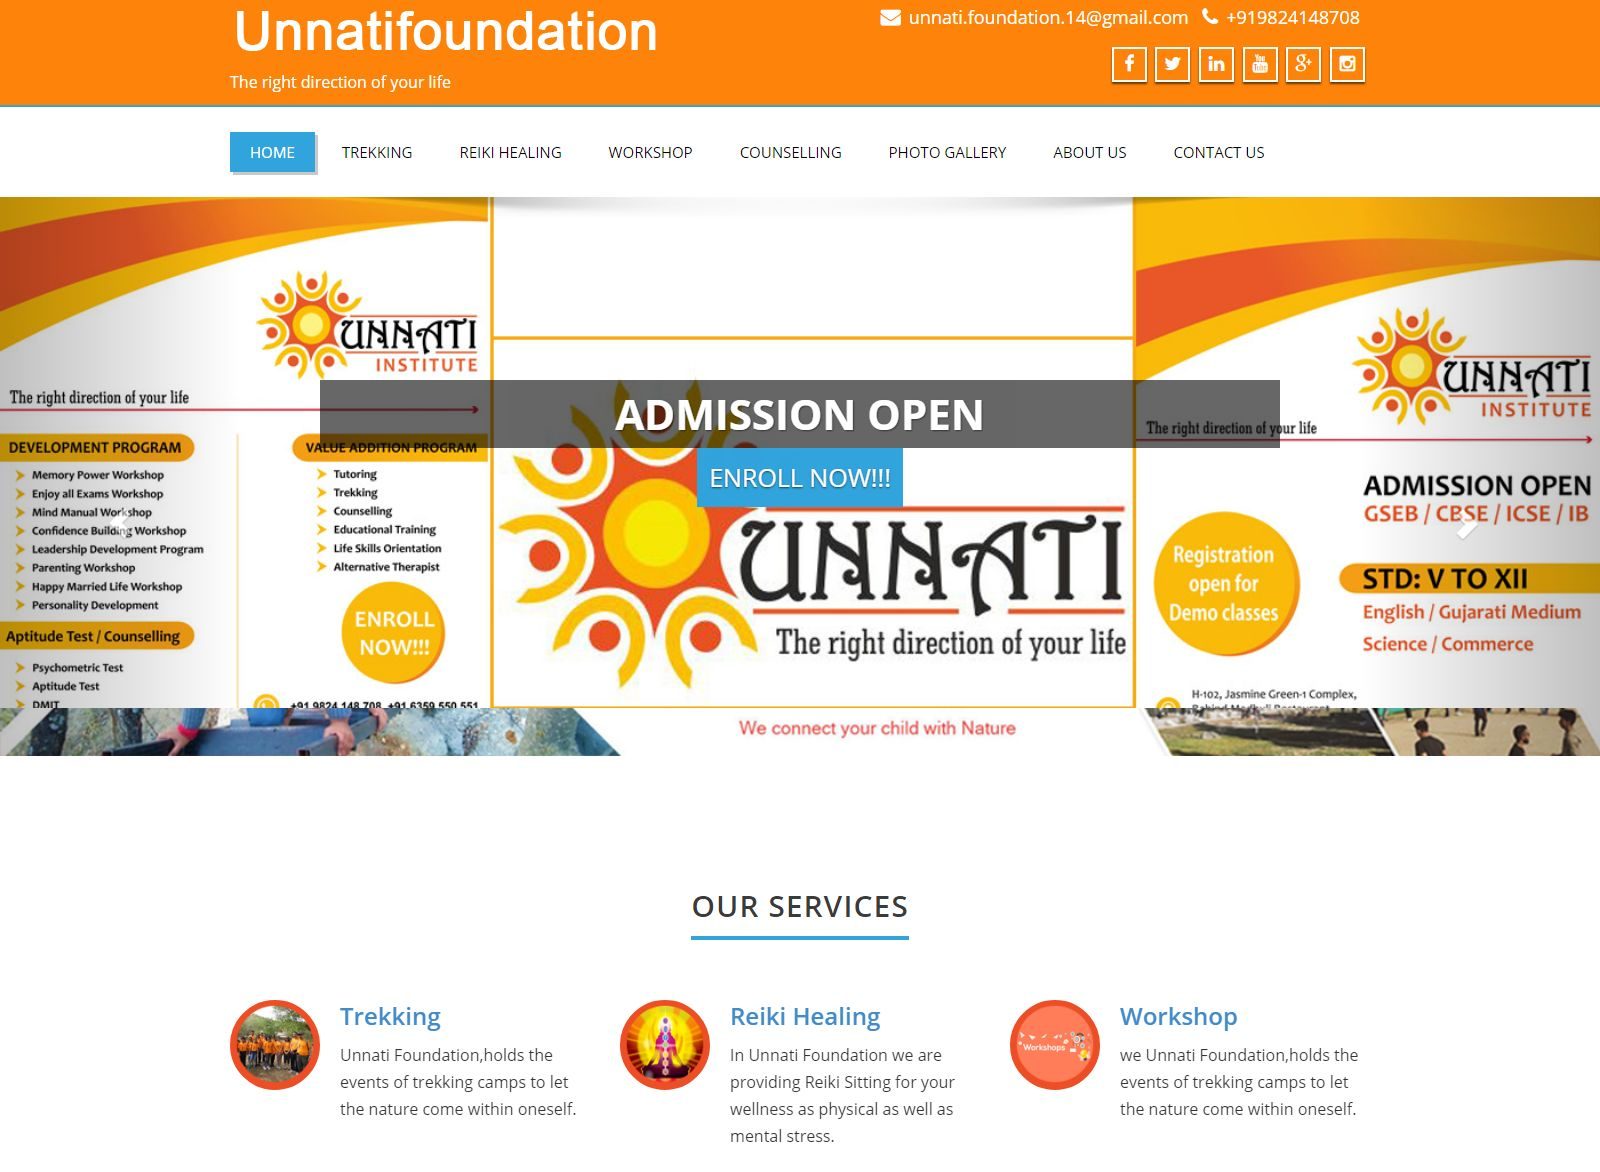 Unnatifoundation